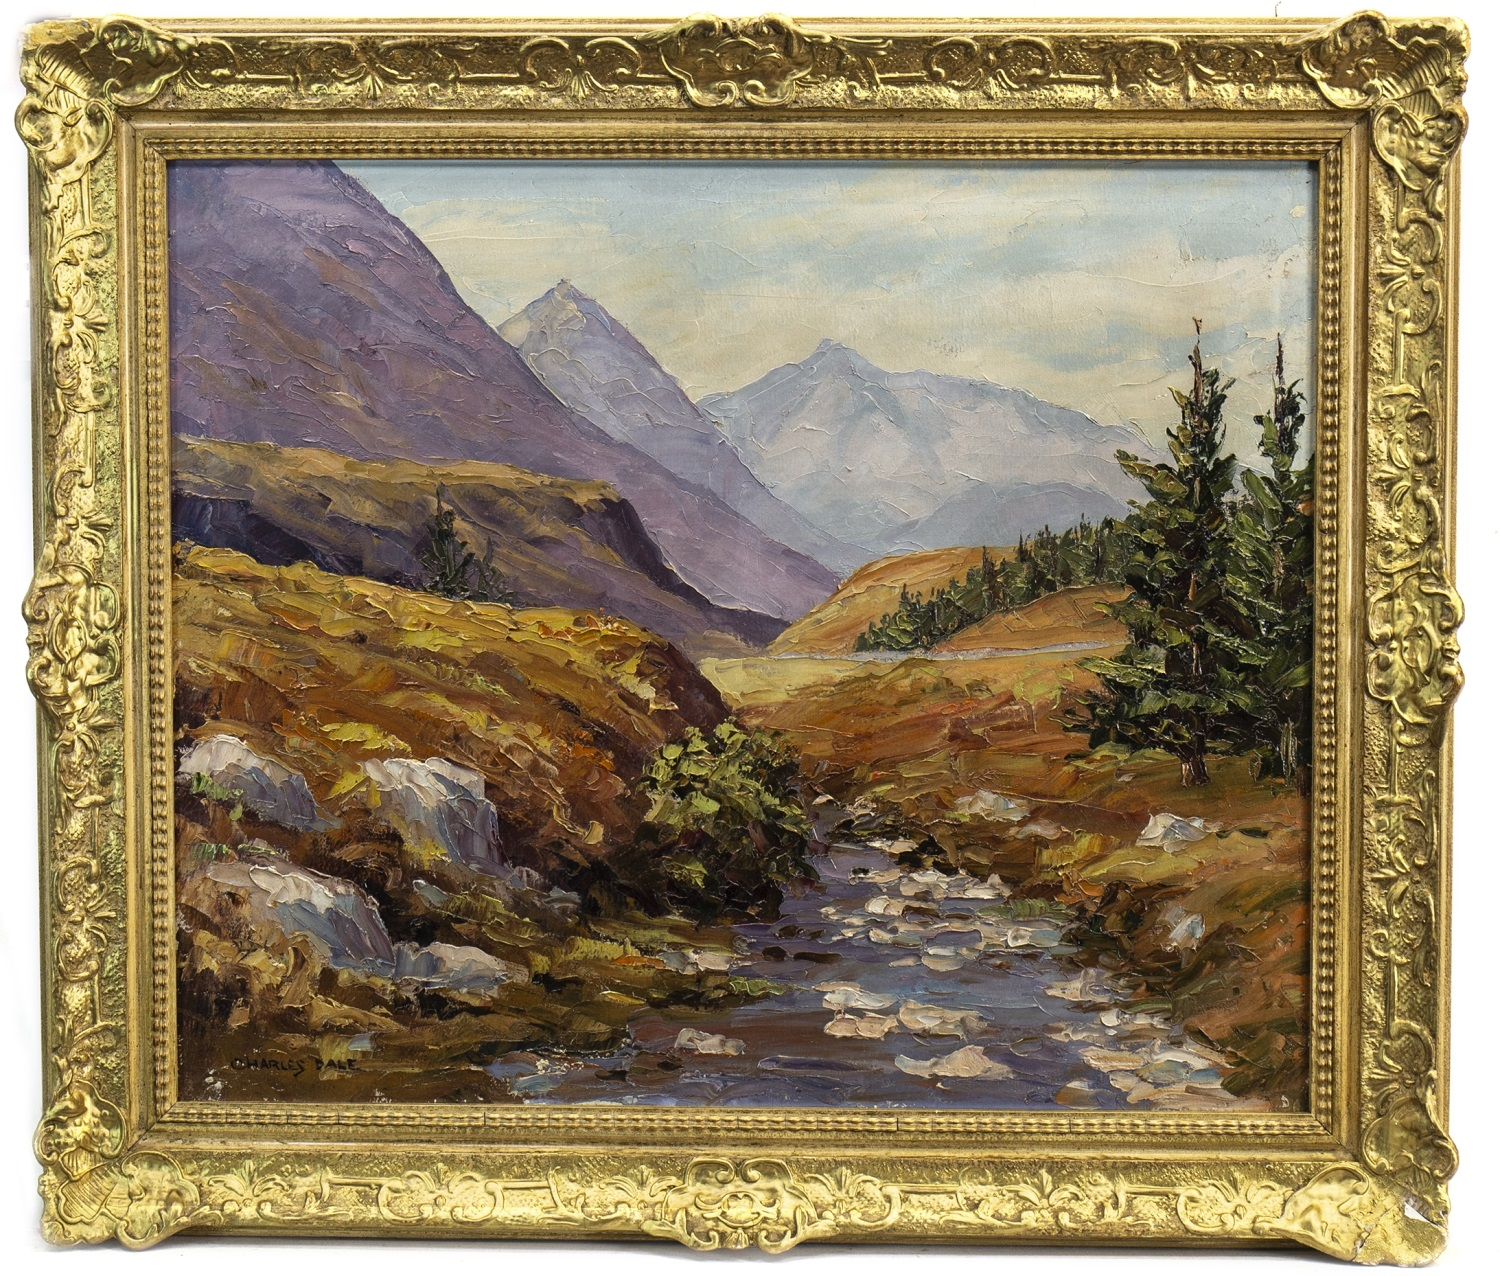 Lot 628 - LANDSCAPE, AN OIL BY CHARLES DALE